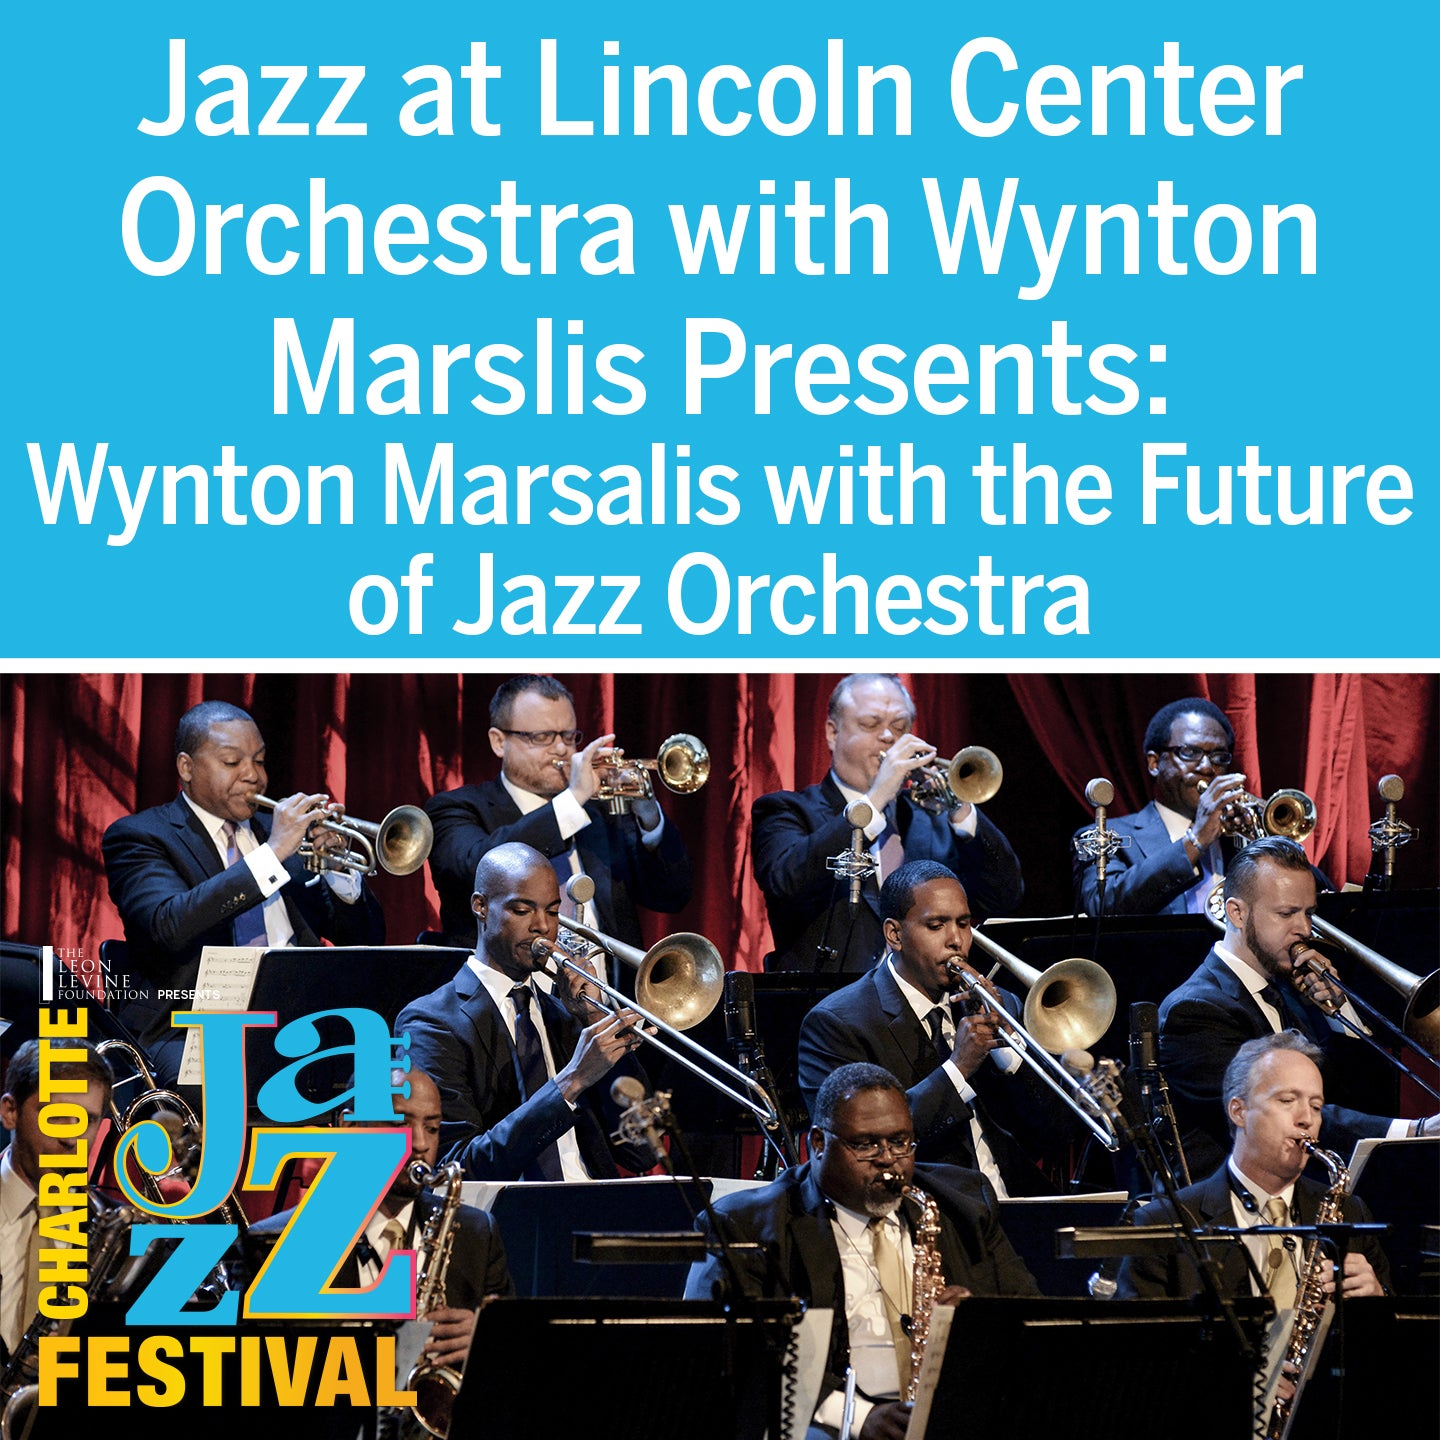 Jazz at Lincoln Center Orchestra with Wynton Marsalis Presents: Wynton Marsalis with The Future of Jazz Orchestra